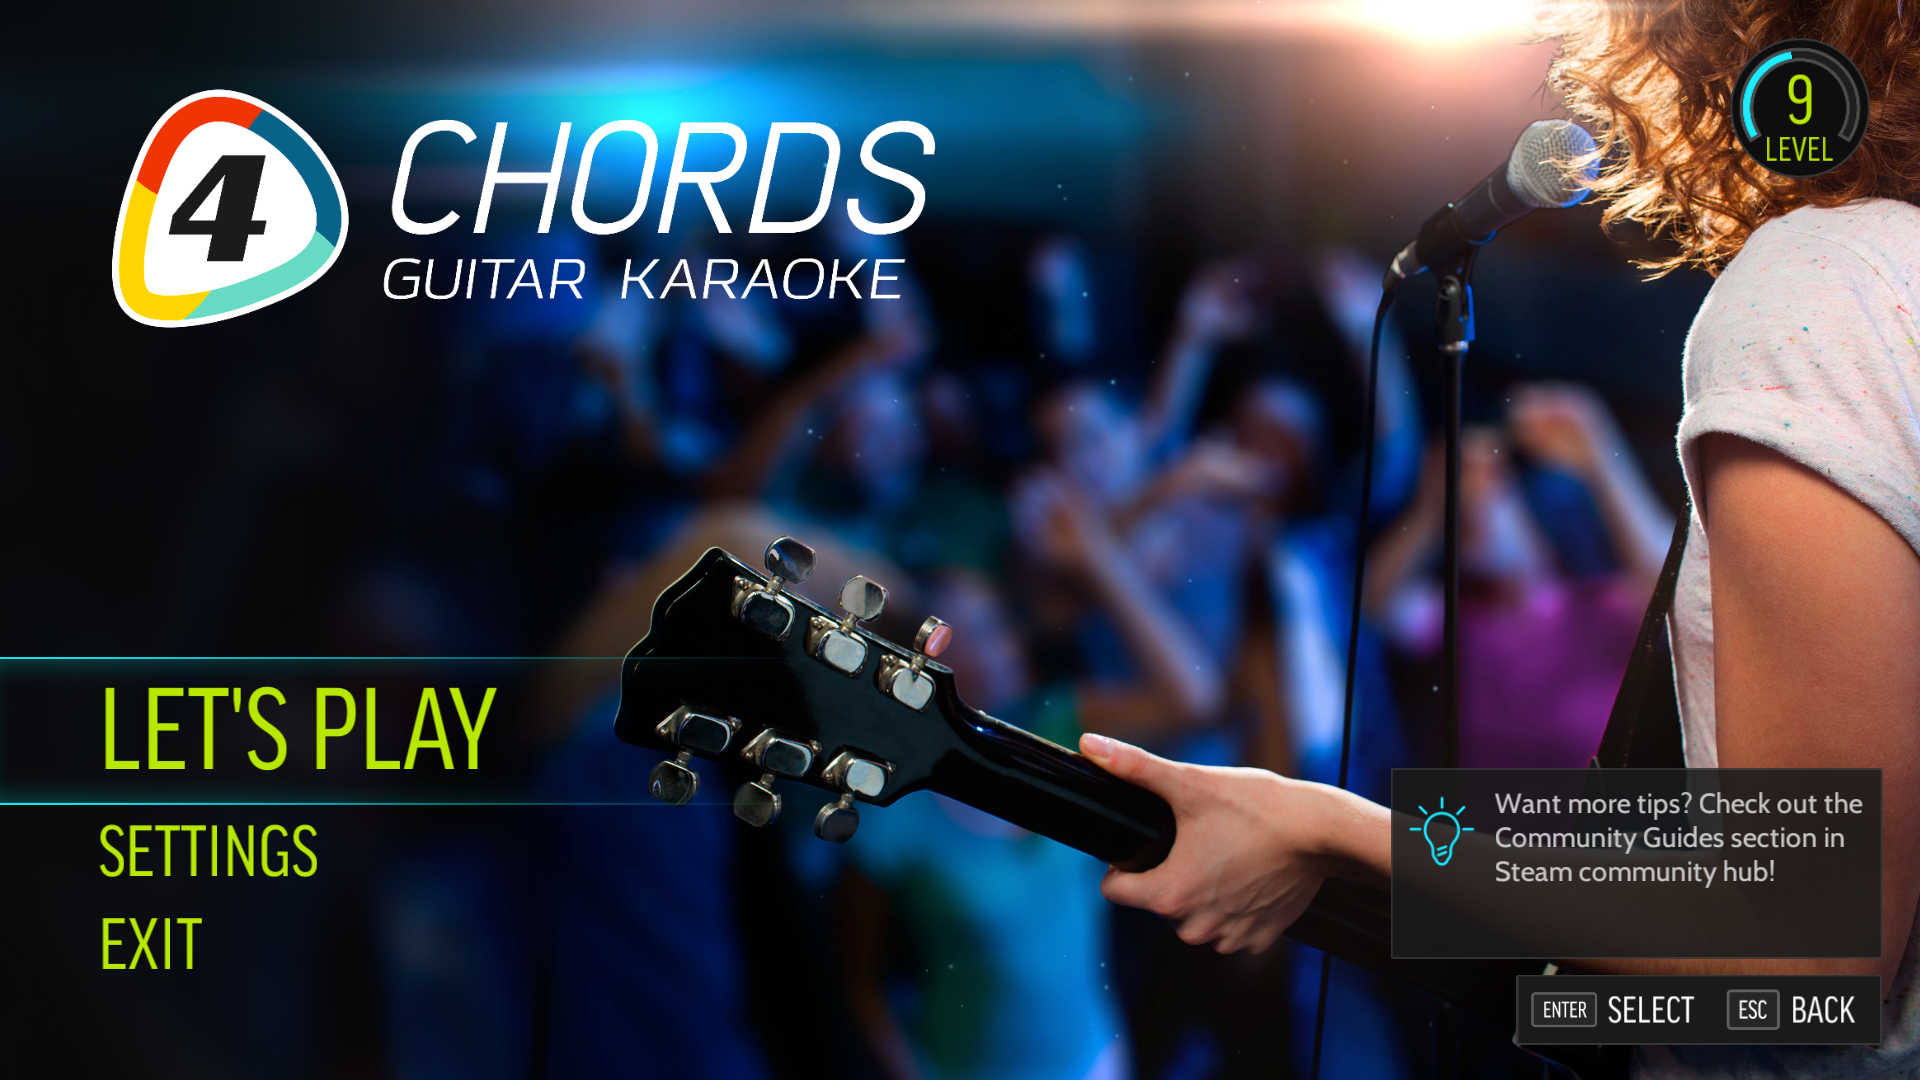 Fourchords Guitar Karaoke Brad Paisley Song Pack On Steam